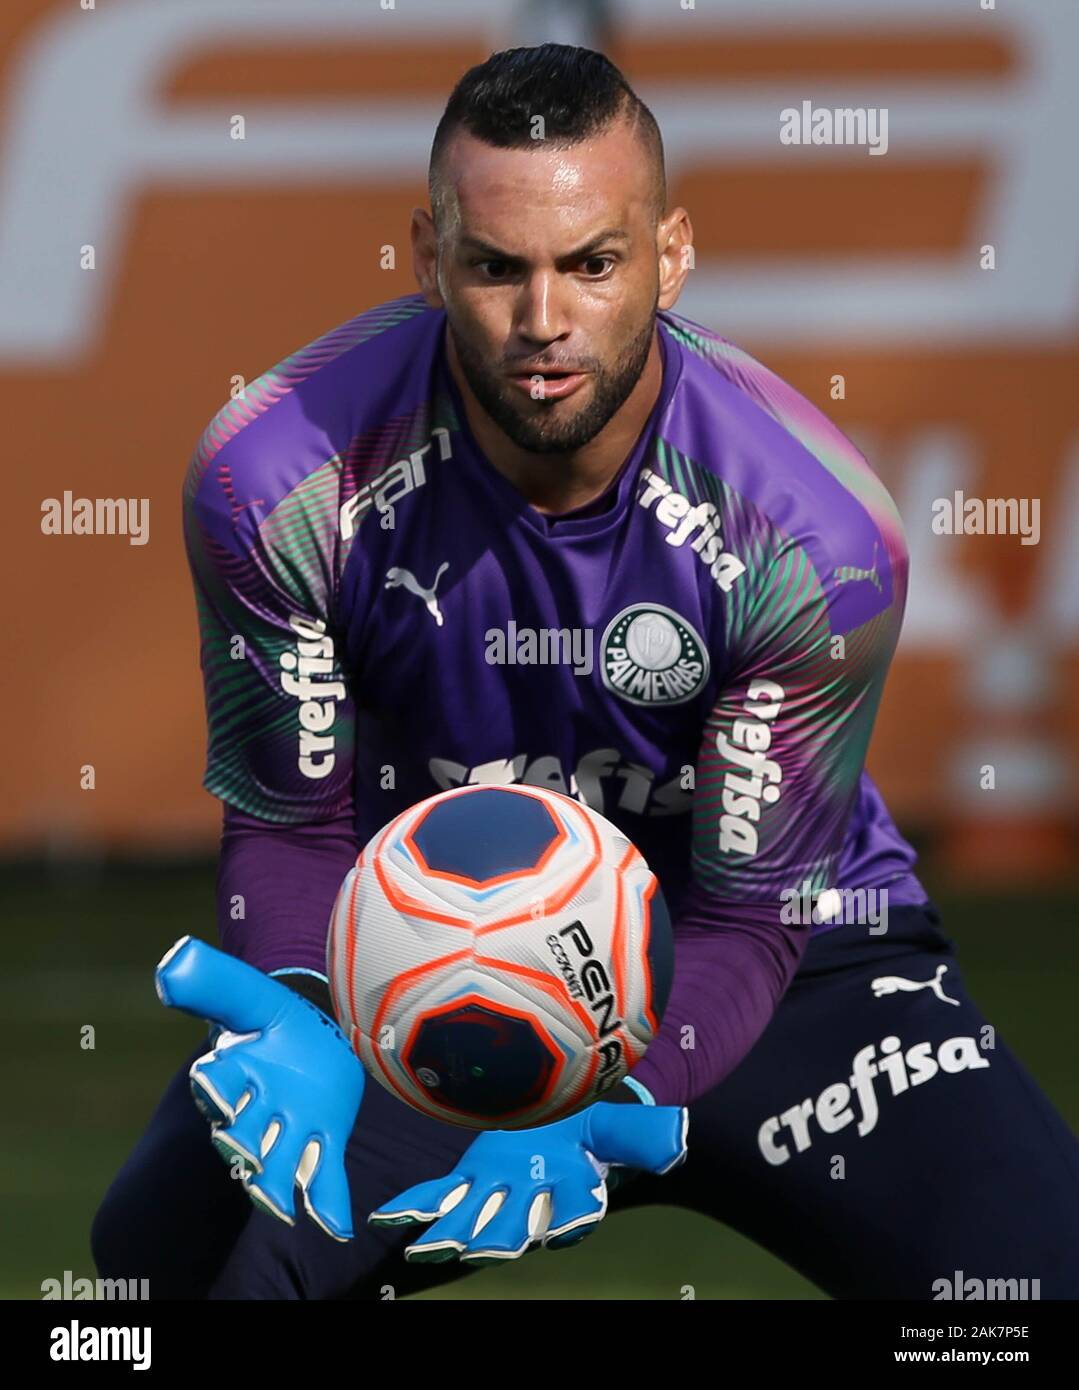 SÃO PAULO, SP - 07.01.2020: TREINO DO PALMEIRAS - SE Palmeiras goalkeeper Weverton during training at the Football Academy. (Photo: Cesar Greco/Fotoarena) Stock Photo